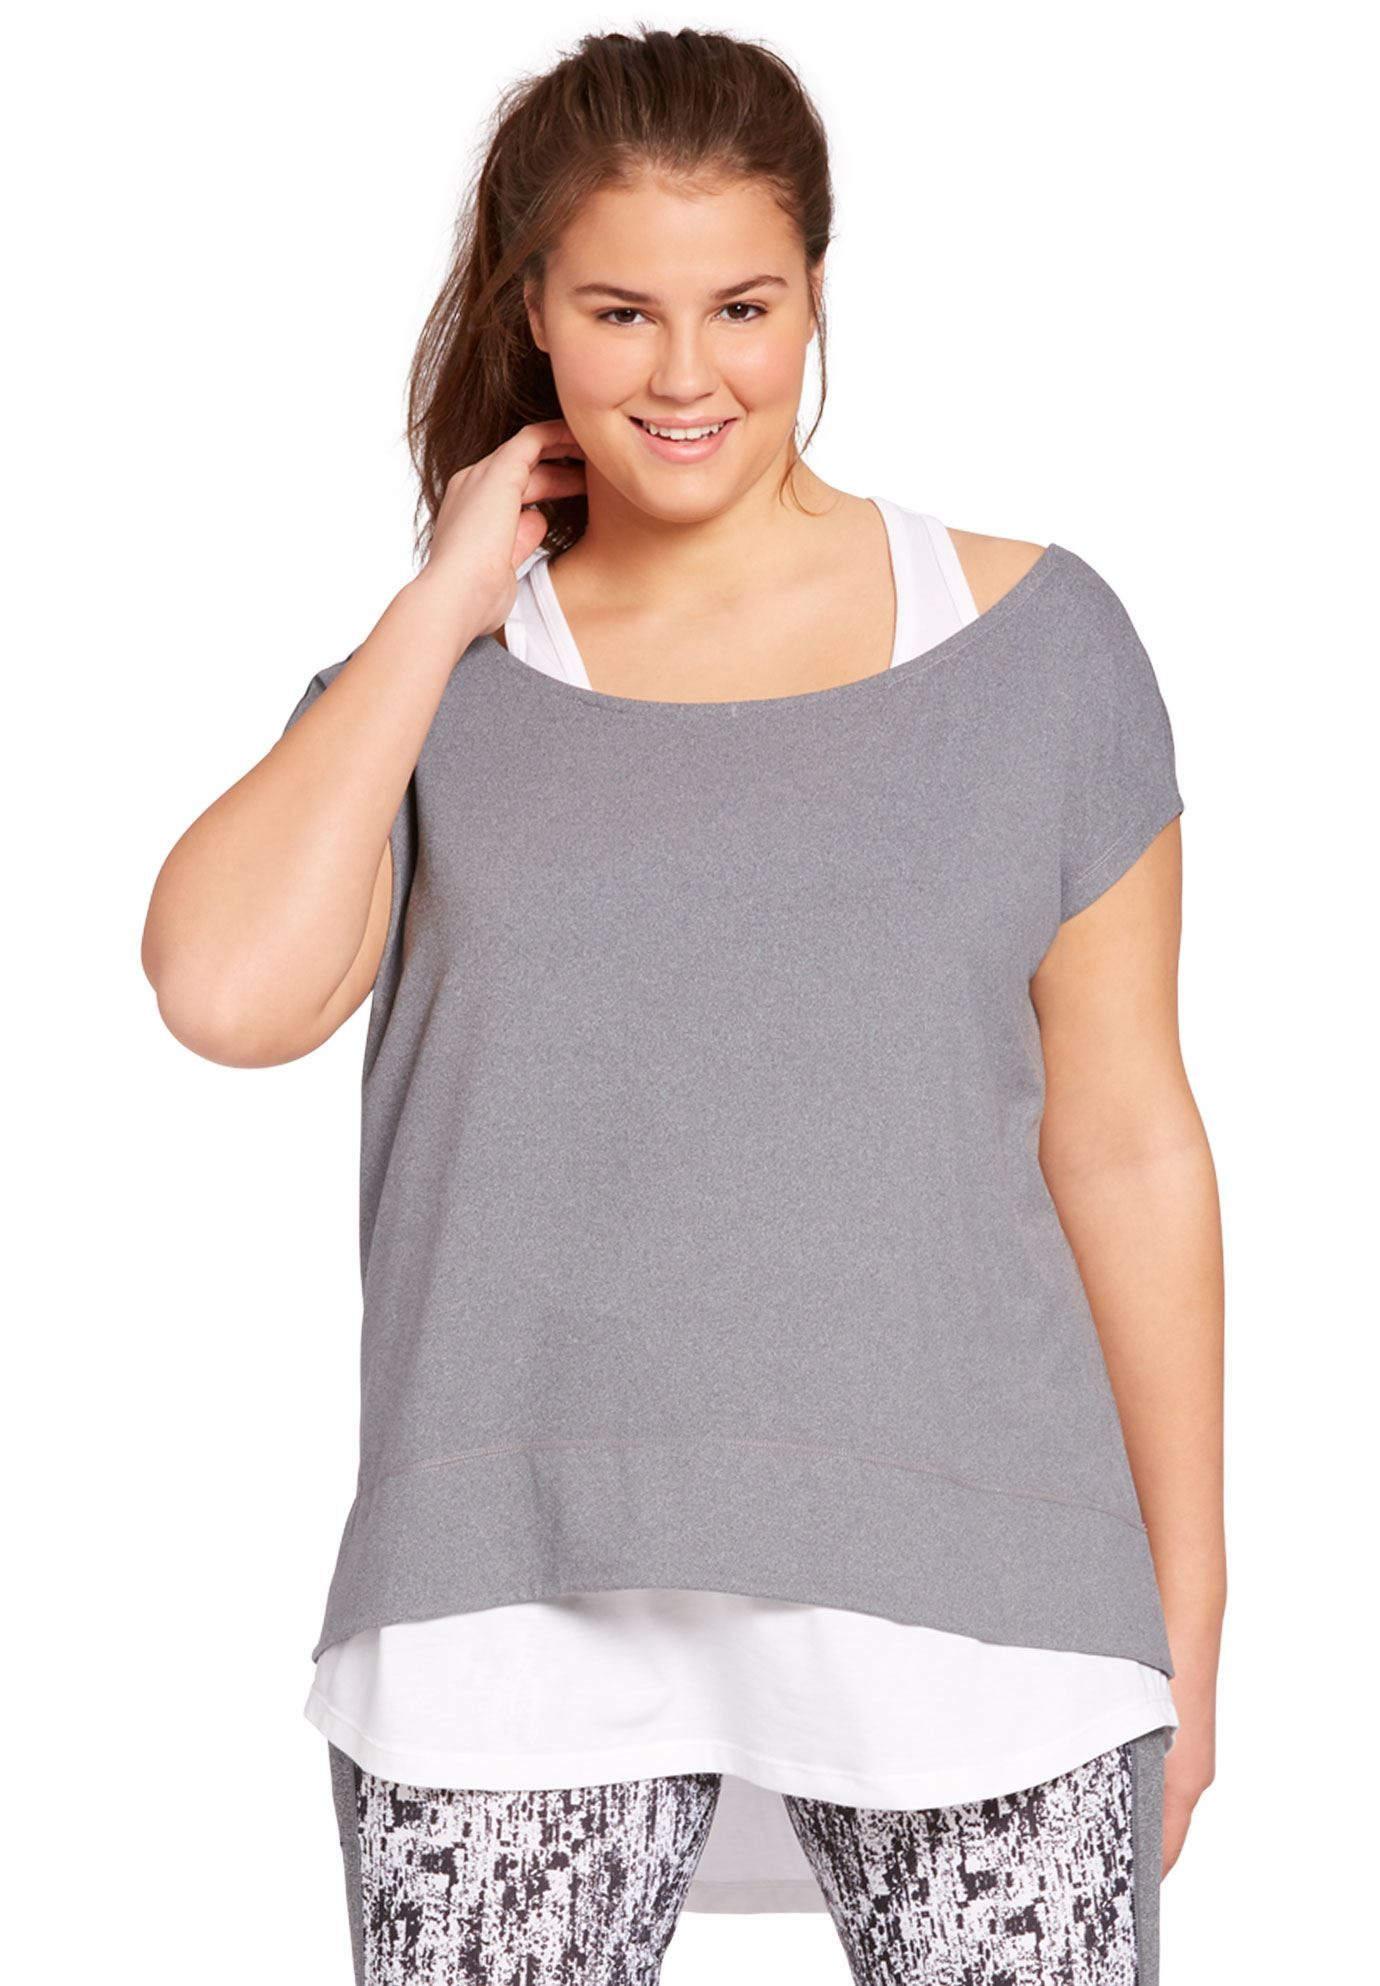 64f617c5d2c Layered look tunic by fullbeauty SPORT® - Women's Plus Size Clothing